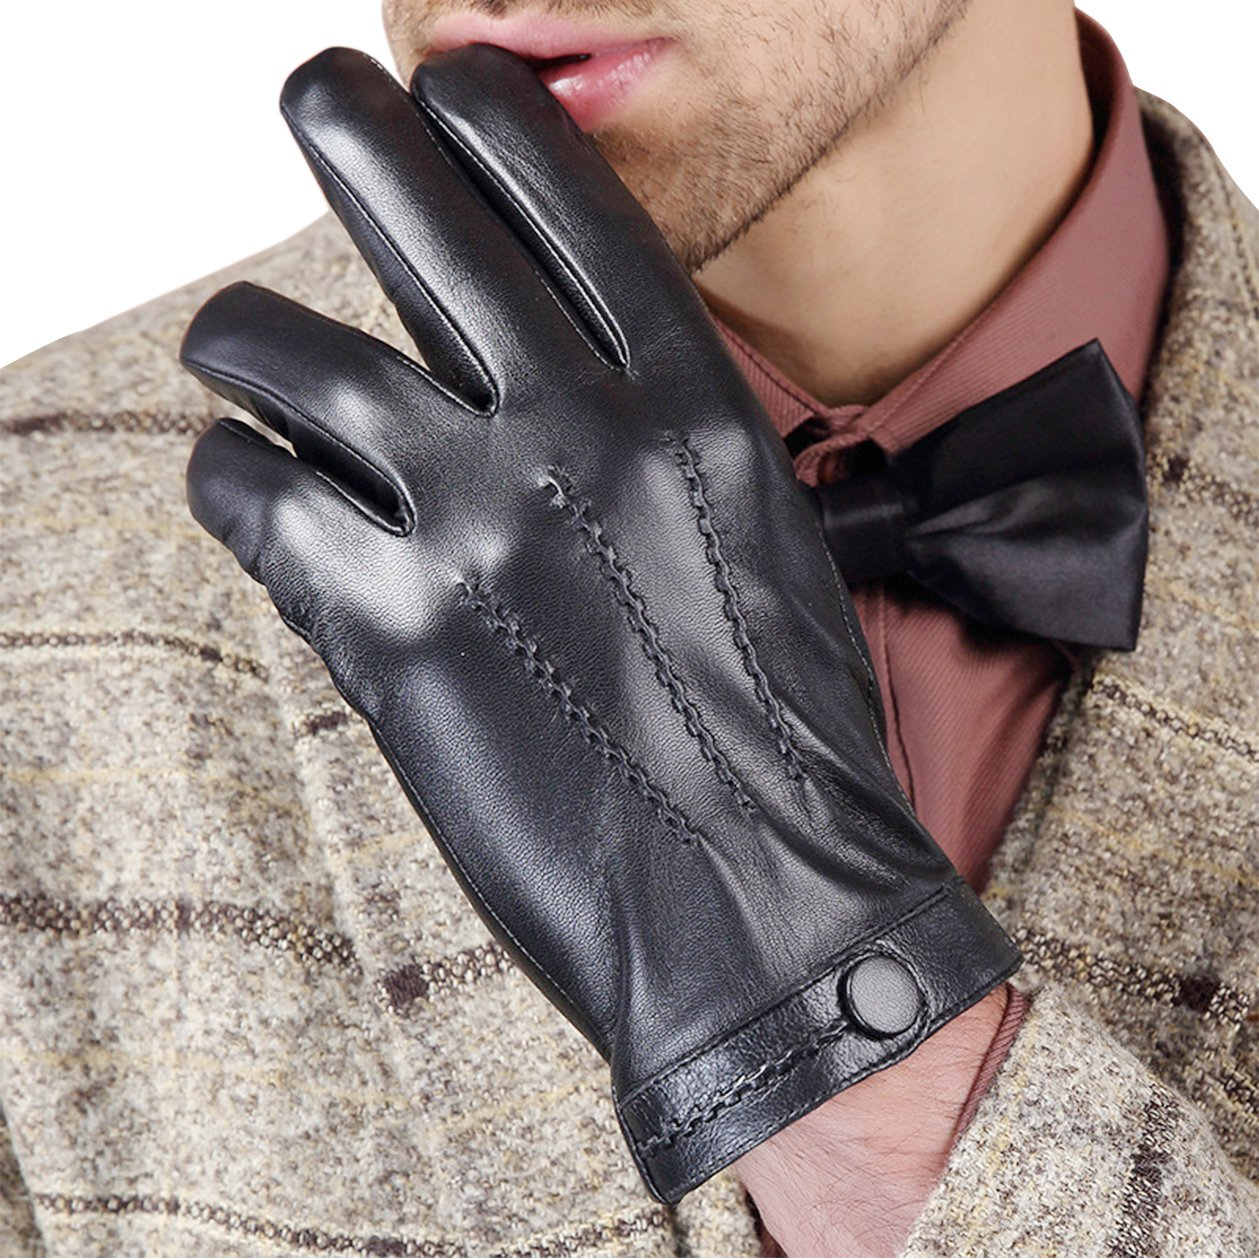 Leather gloves winter warm fashion simple business sheepskin gloves black classic for men size L